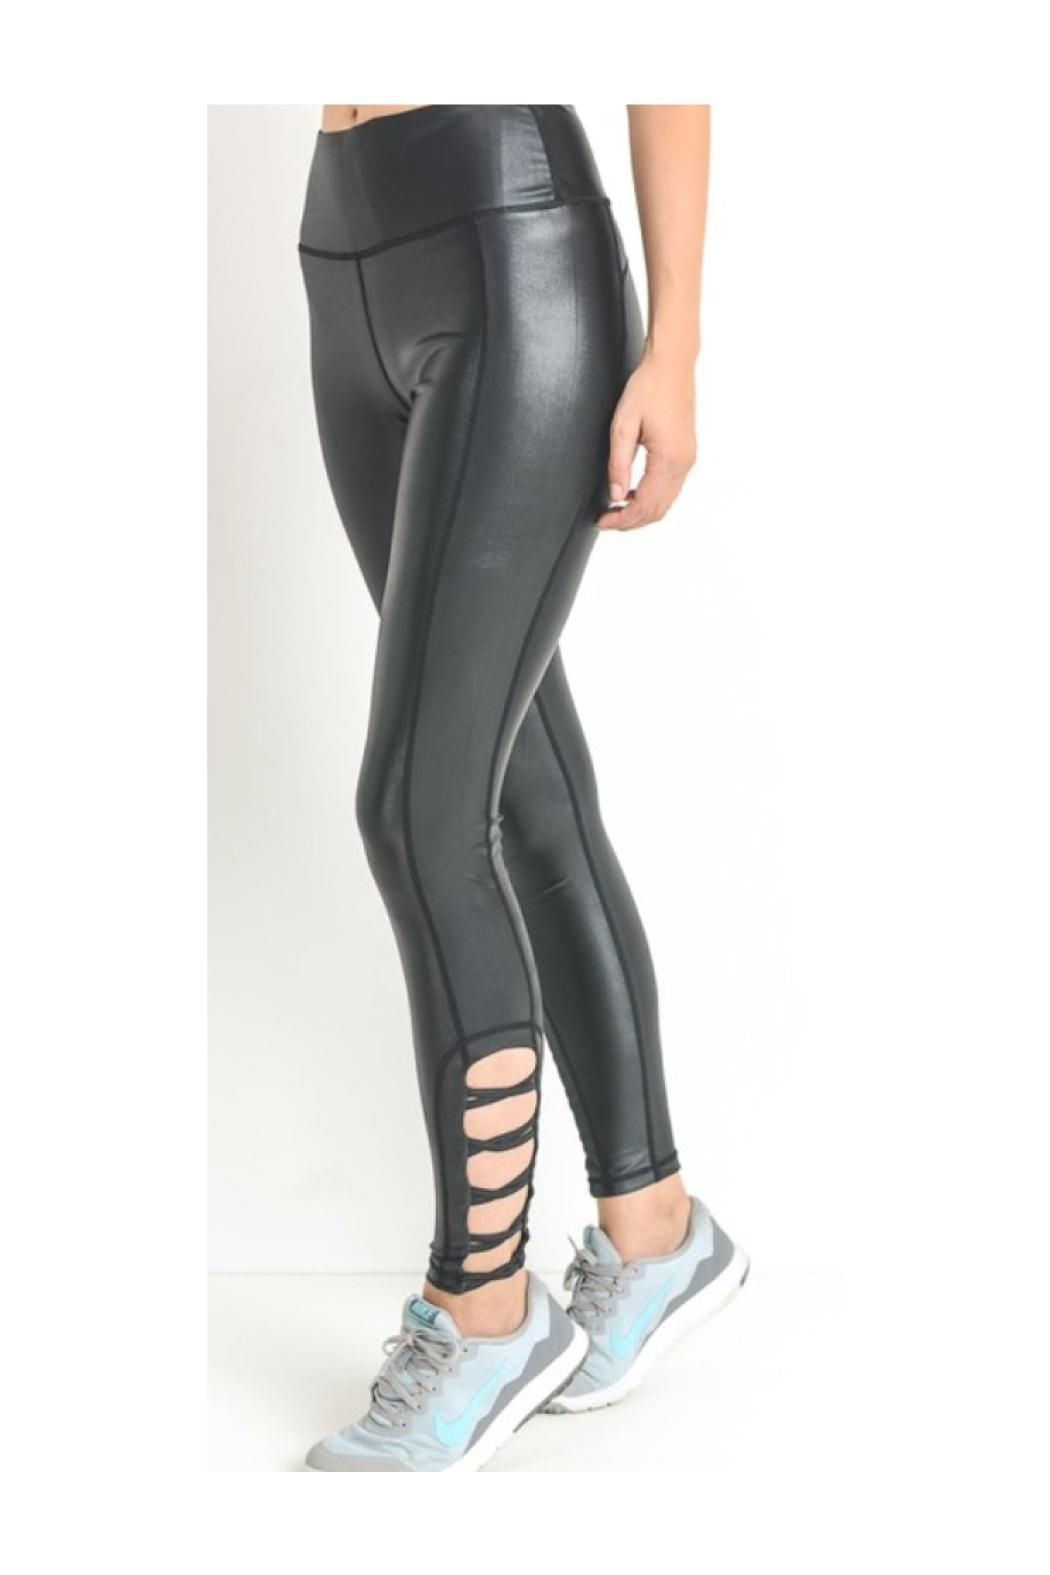 Polly & Esther Criss Cross Leggings - Front Cropped Image